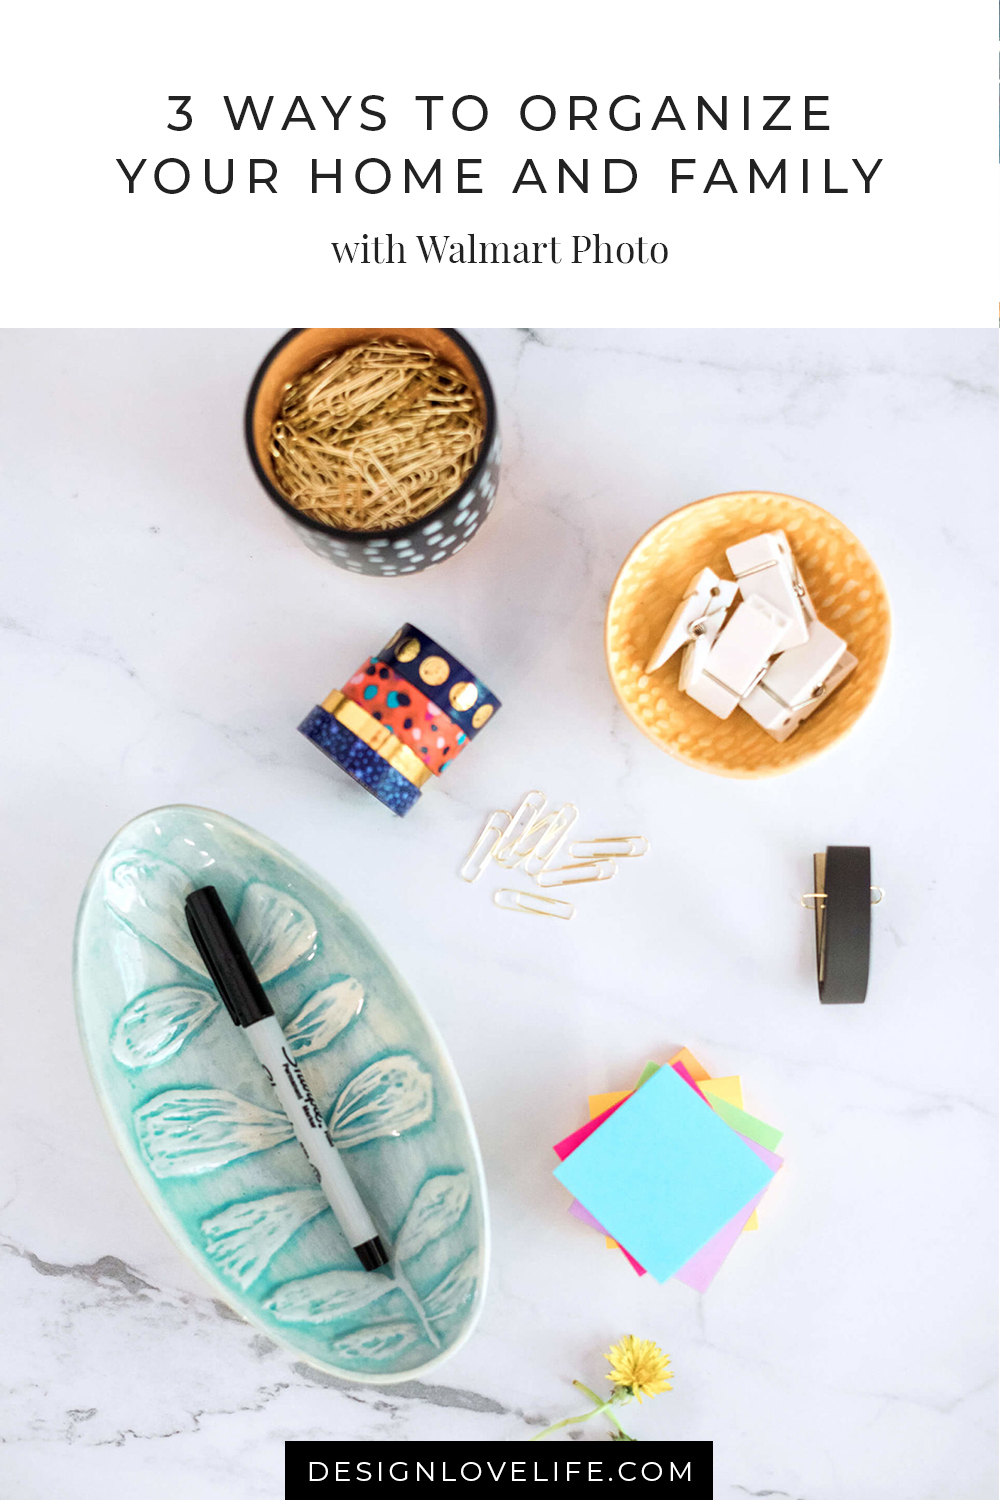 supplies for a kanban board from Design Love Life in partnership with Walmart Photo Center